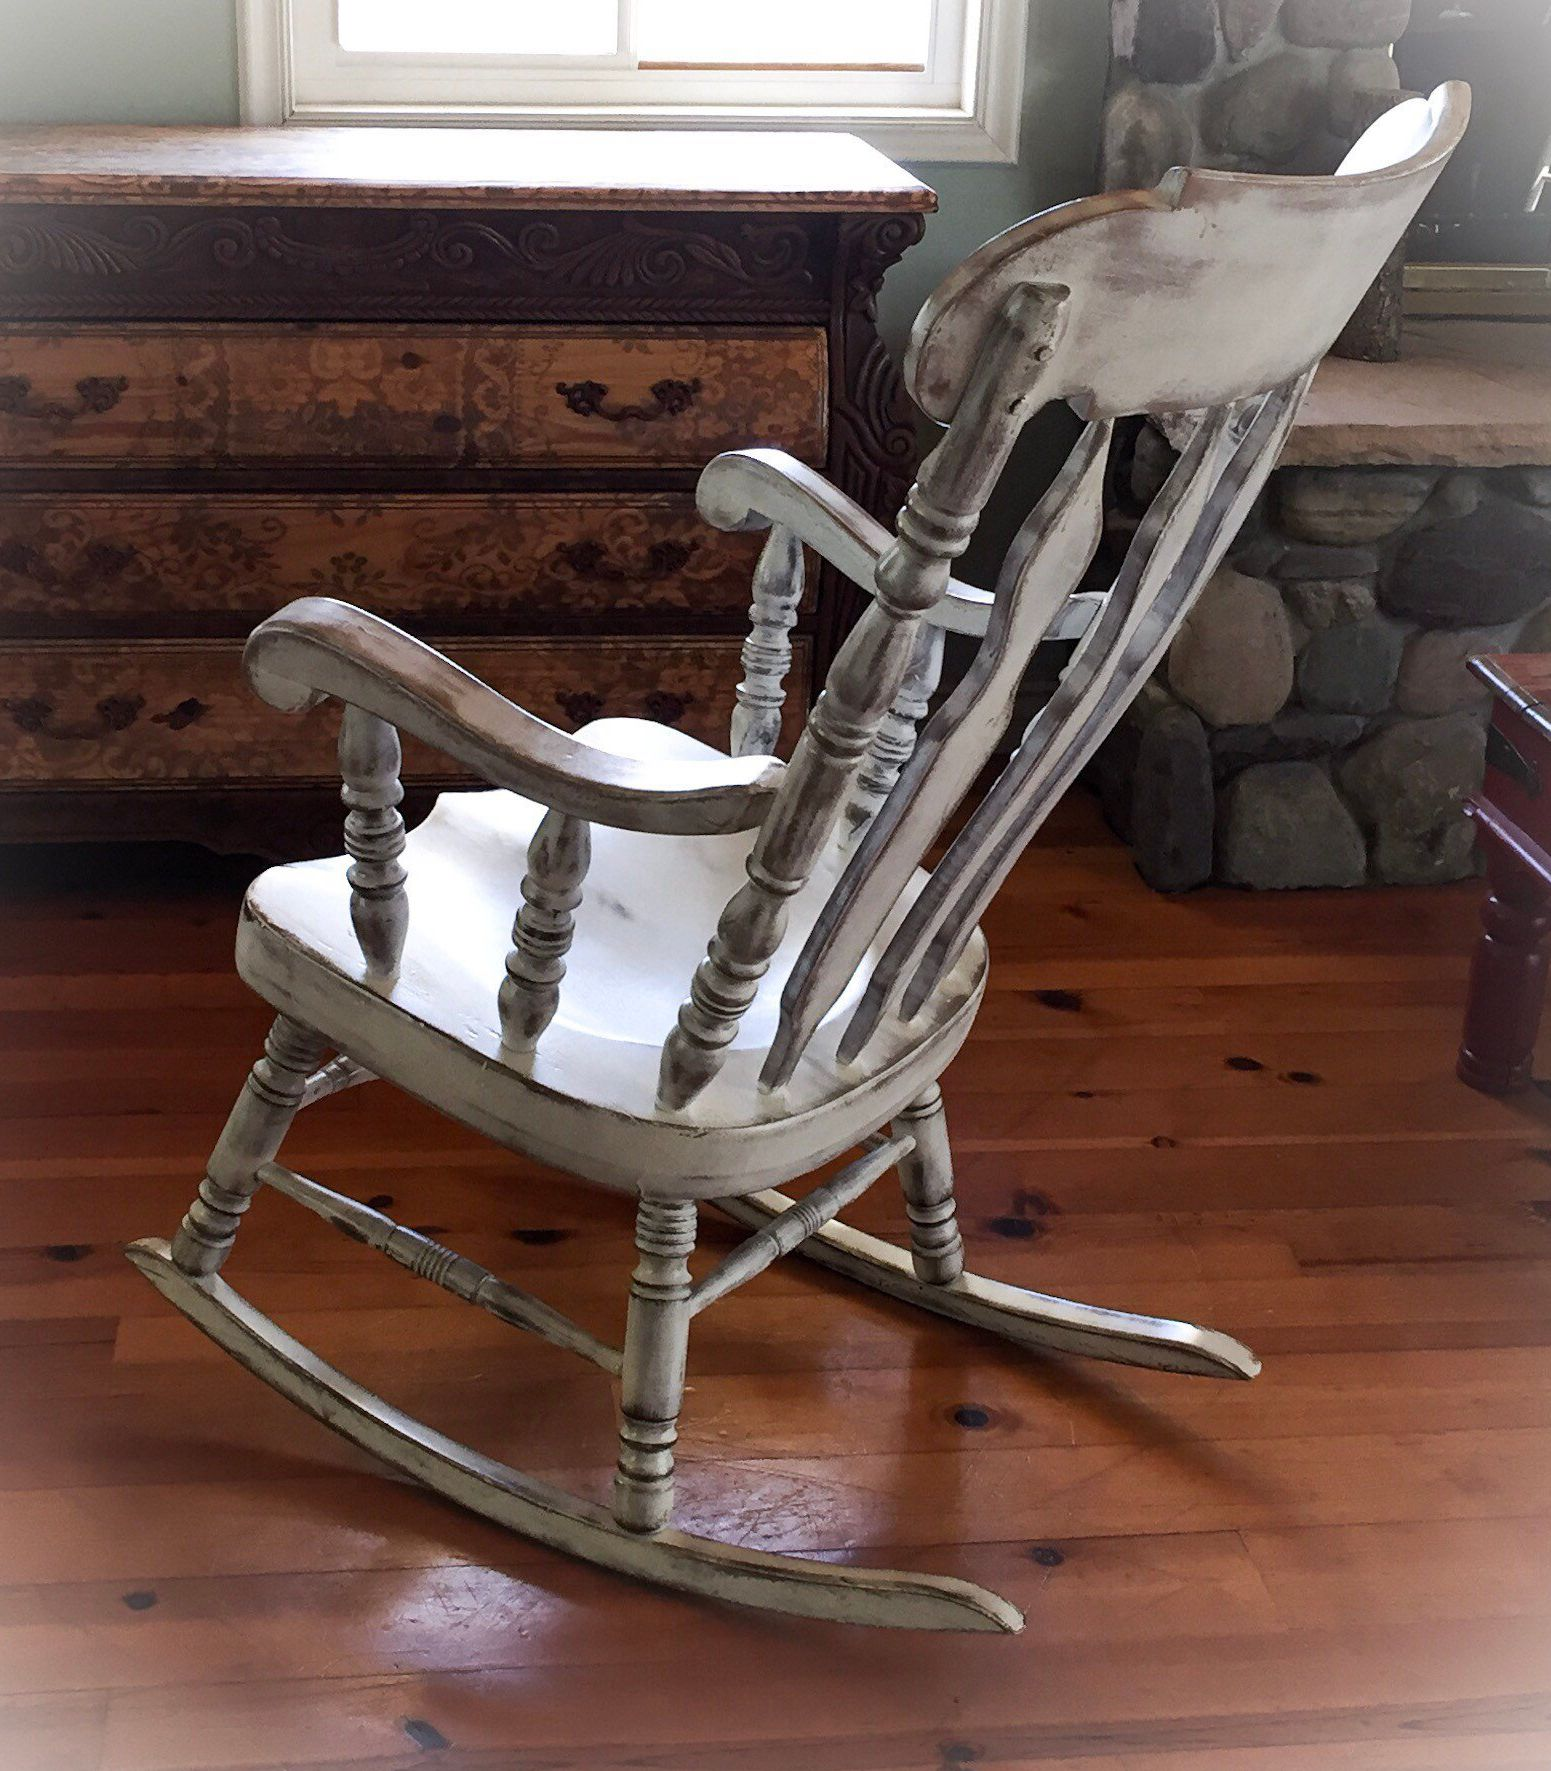 Remarkable Large Rocking Chair Shabby Chic Rocker Painted Furniture Dailytribune Chair Design For Home Dailytribuneorg